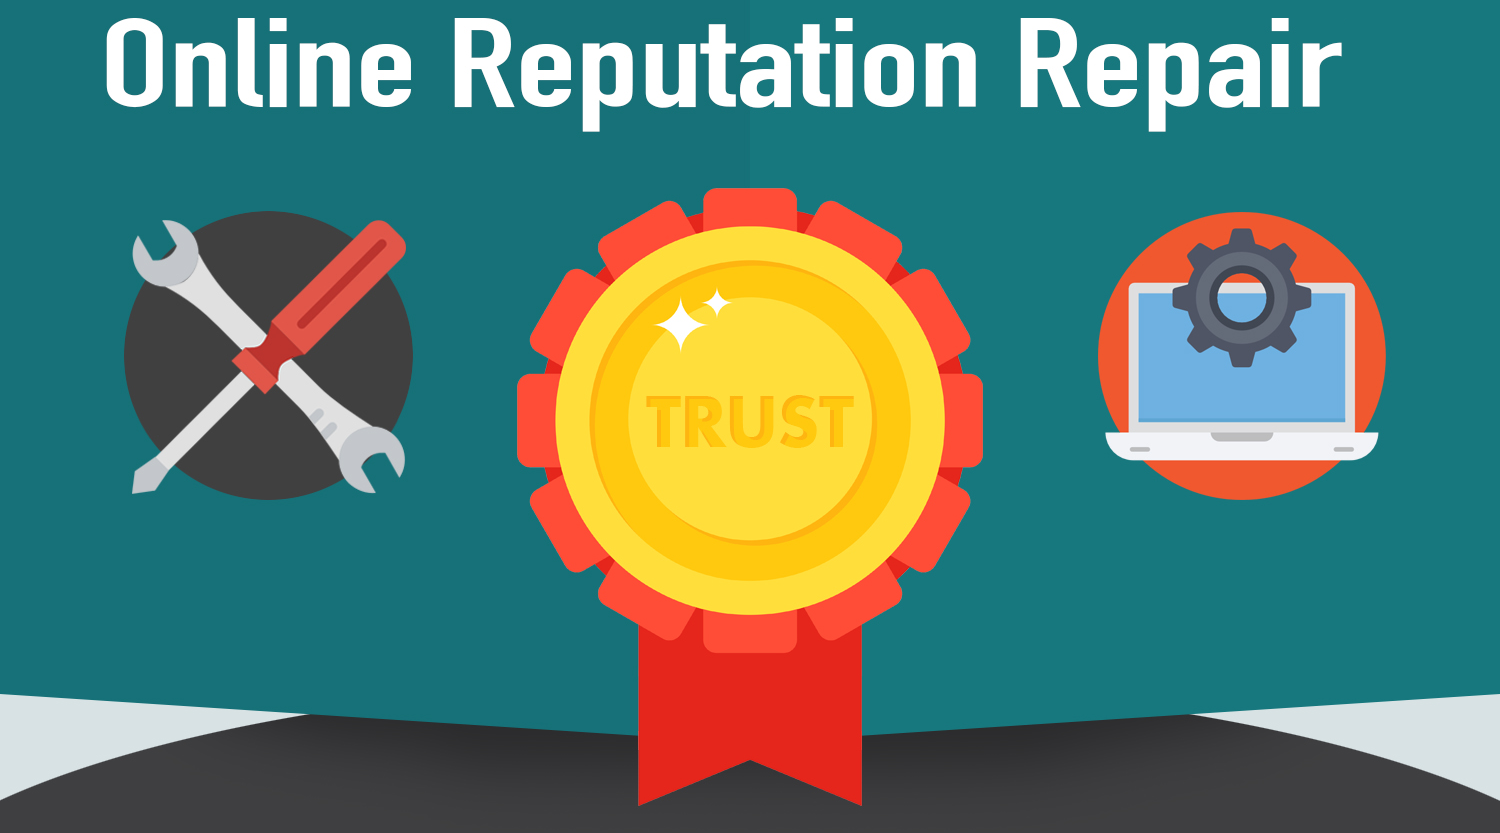 Earn your Potential Customers' Trust through Online Reputation Repair